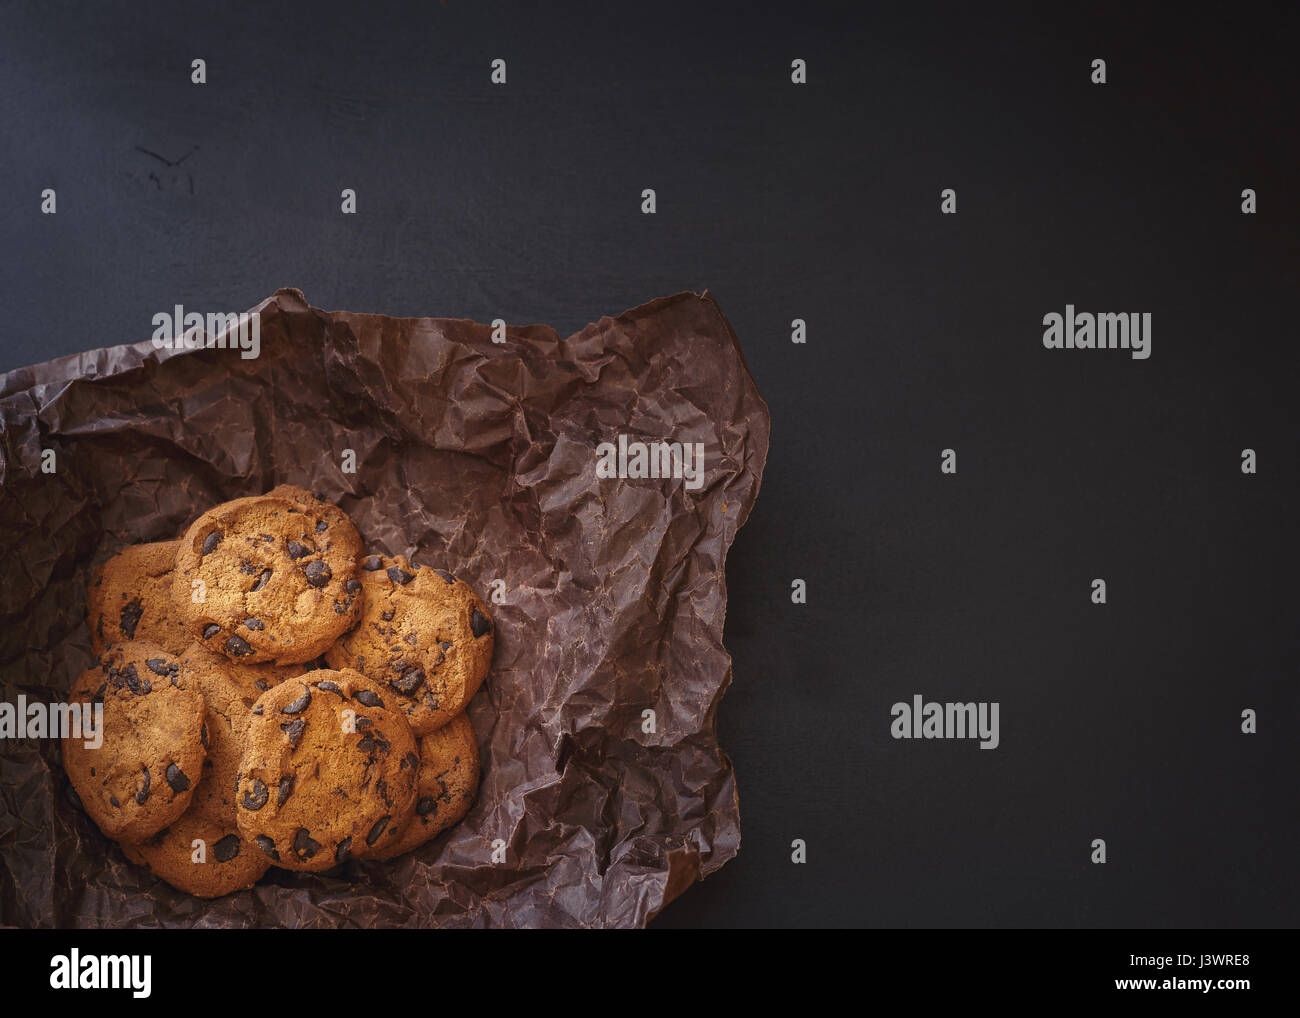 Chocolate chip cookies on crumpled paper over dark background in low light - Stock Image